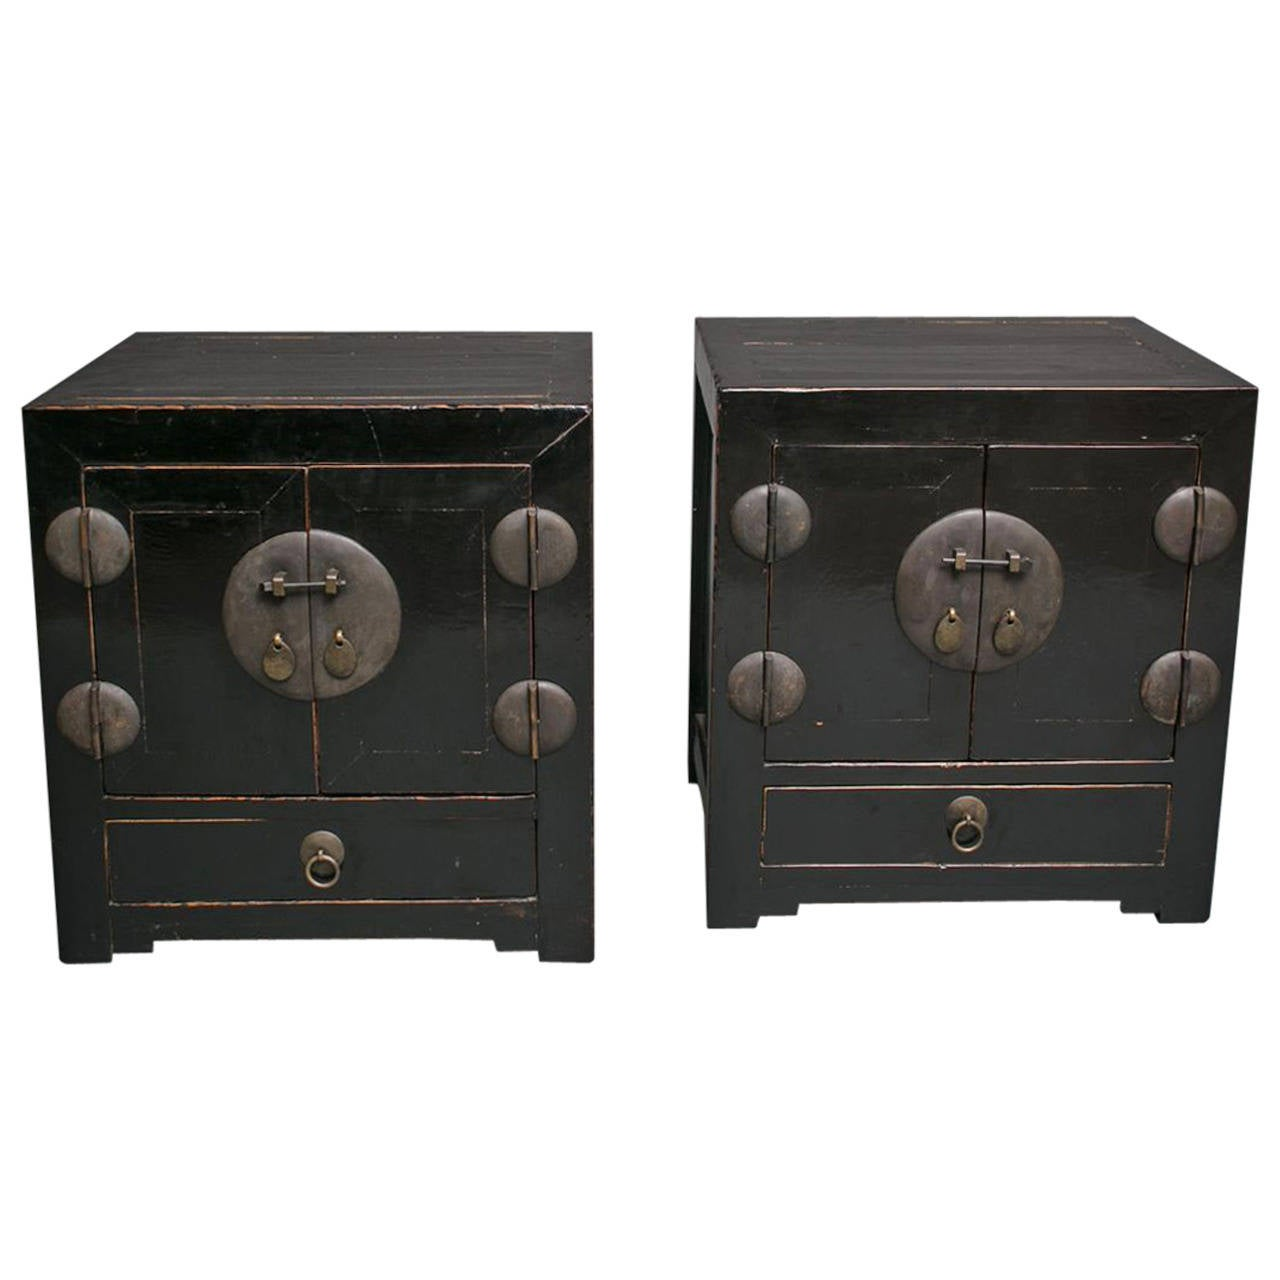 Pair of chinese black lacquer cabinets at 1stdibs for Chinese black lacquer furniture